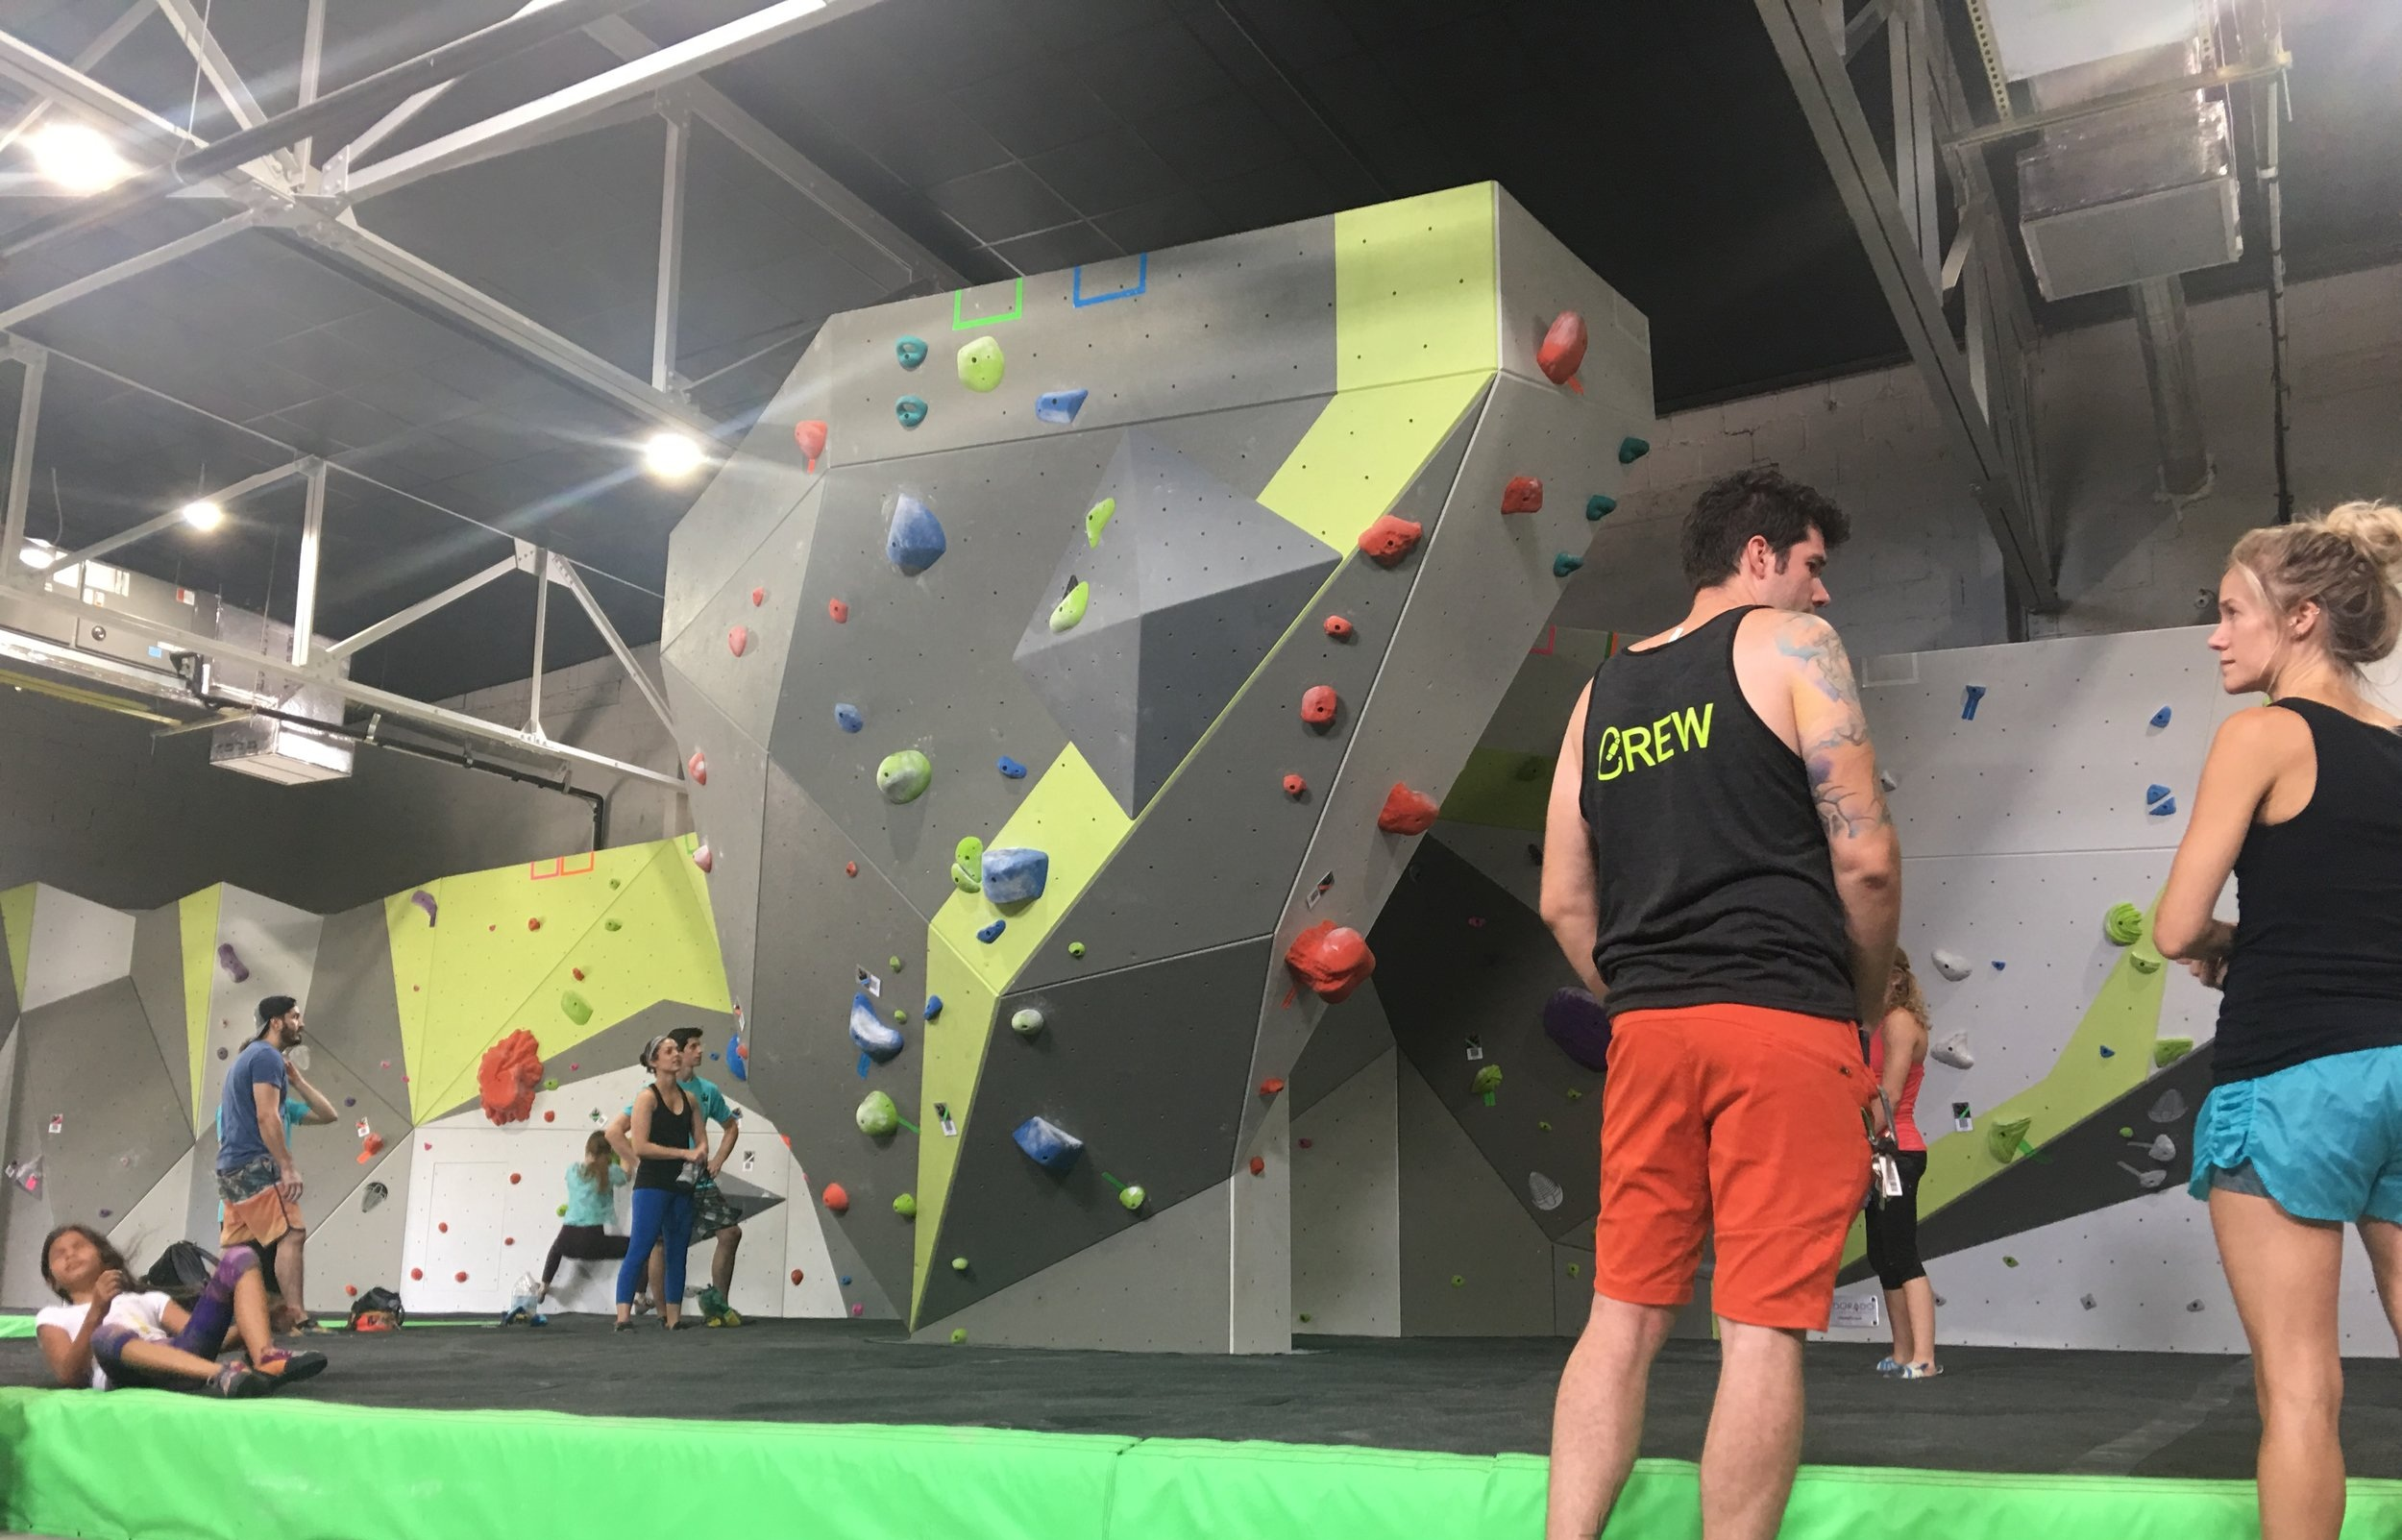 Options to Fit Your Lifestyle… - All members enjoy unlimited climbing and yoga/fitness classes, 2 guest passes/month (different guest each time), discounted climbing instruction and personal training, and full access to members only events.A day pass entitles you to full use of the facility (top rope, auto-belay, bouldering, and ninja rig for 1 day.